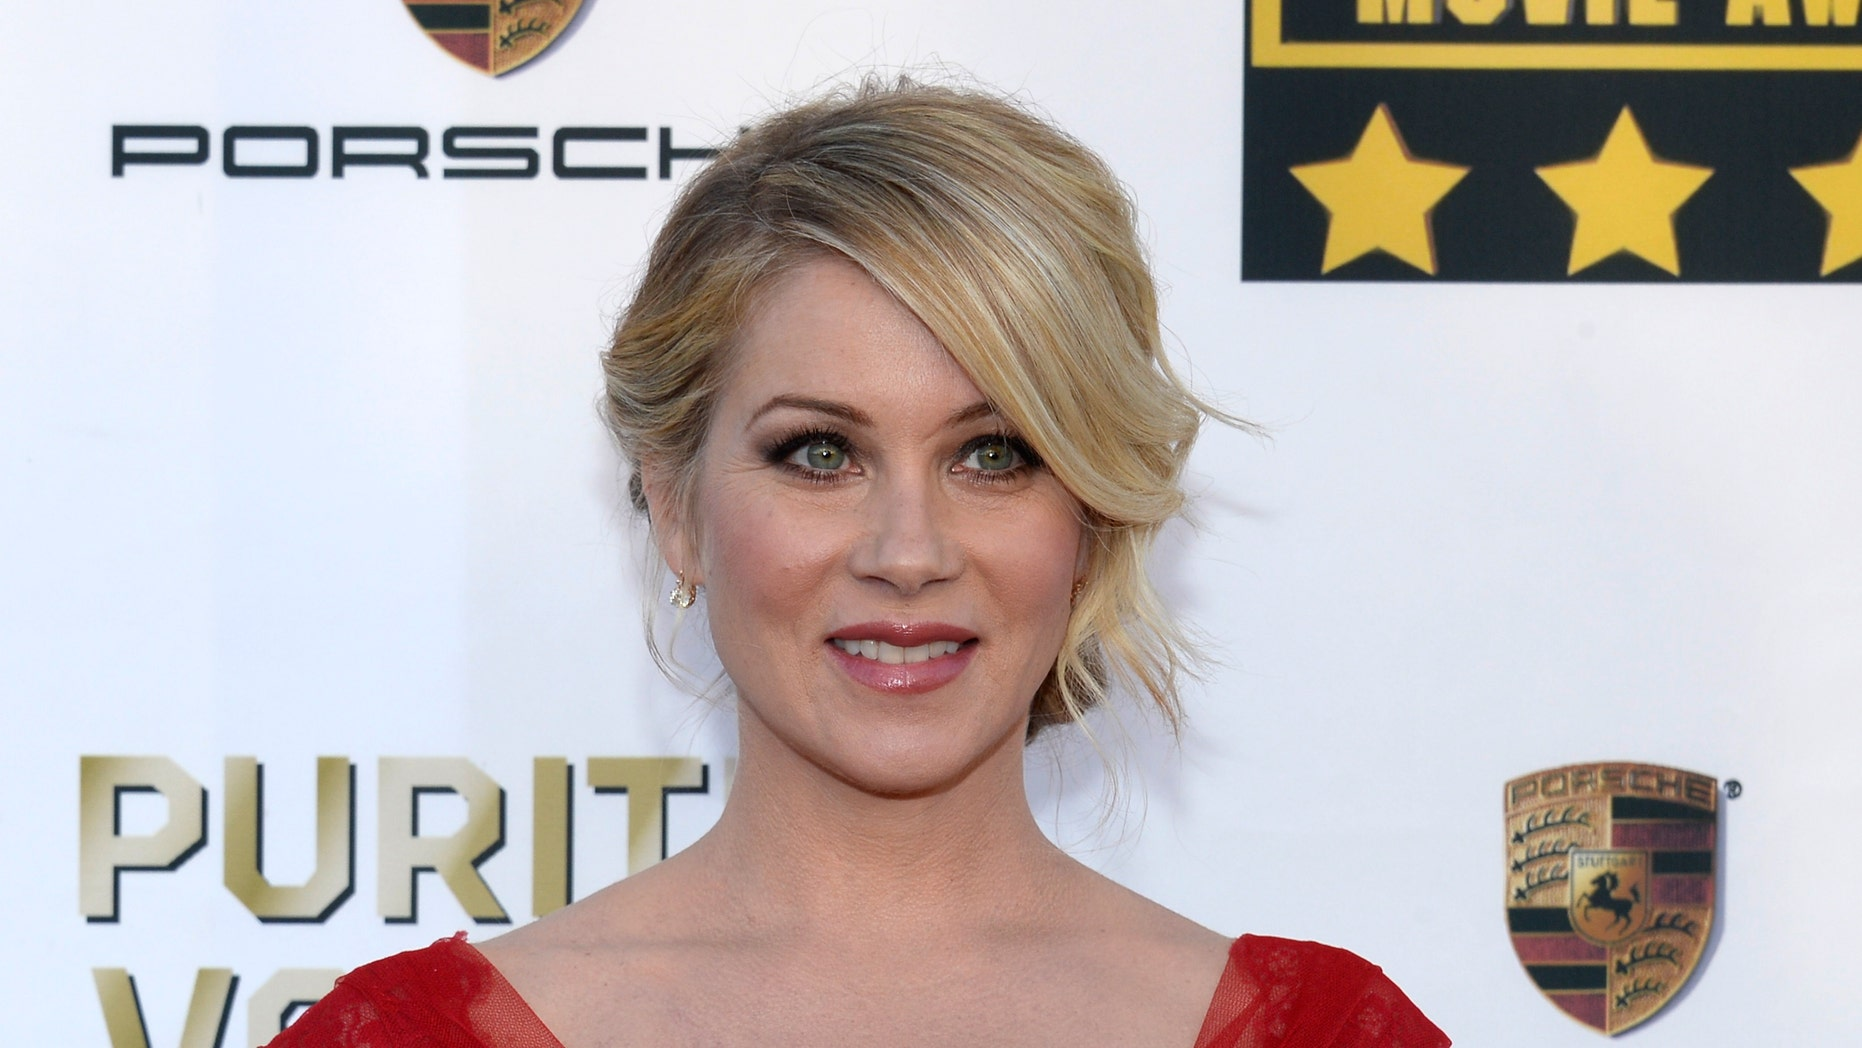 Actress Christina Applegate arrives at the 19th annual Critics' Choice Movie Awards in Santa Monica, California January 16, 2014.    REUTERS/Kevork Djansezian (UNITED STATES  - Tags: ENTERTAINMENT)  (CRITICSCHOICE-ARRIVALS) - RTX17HD2